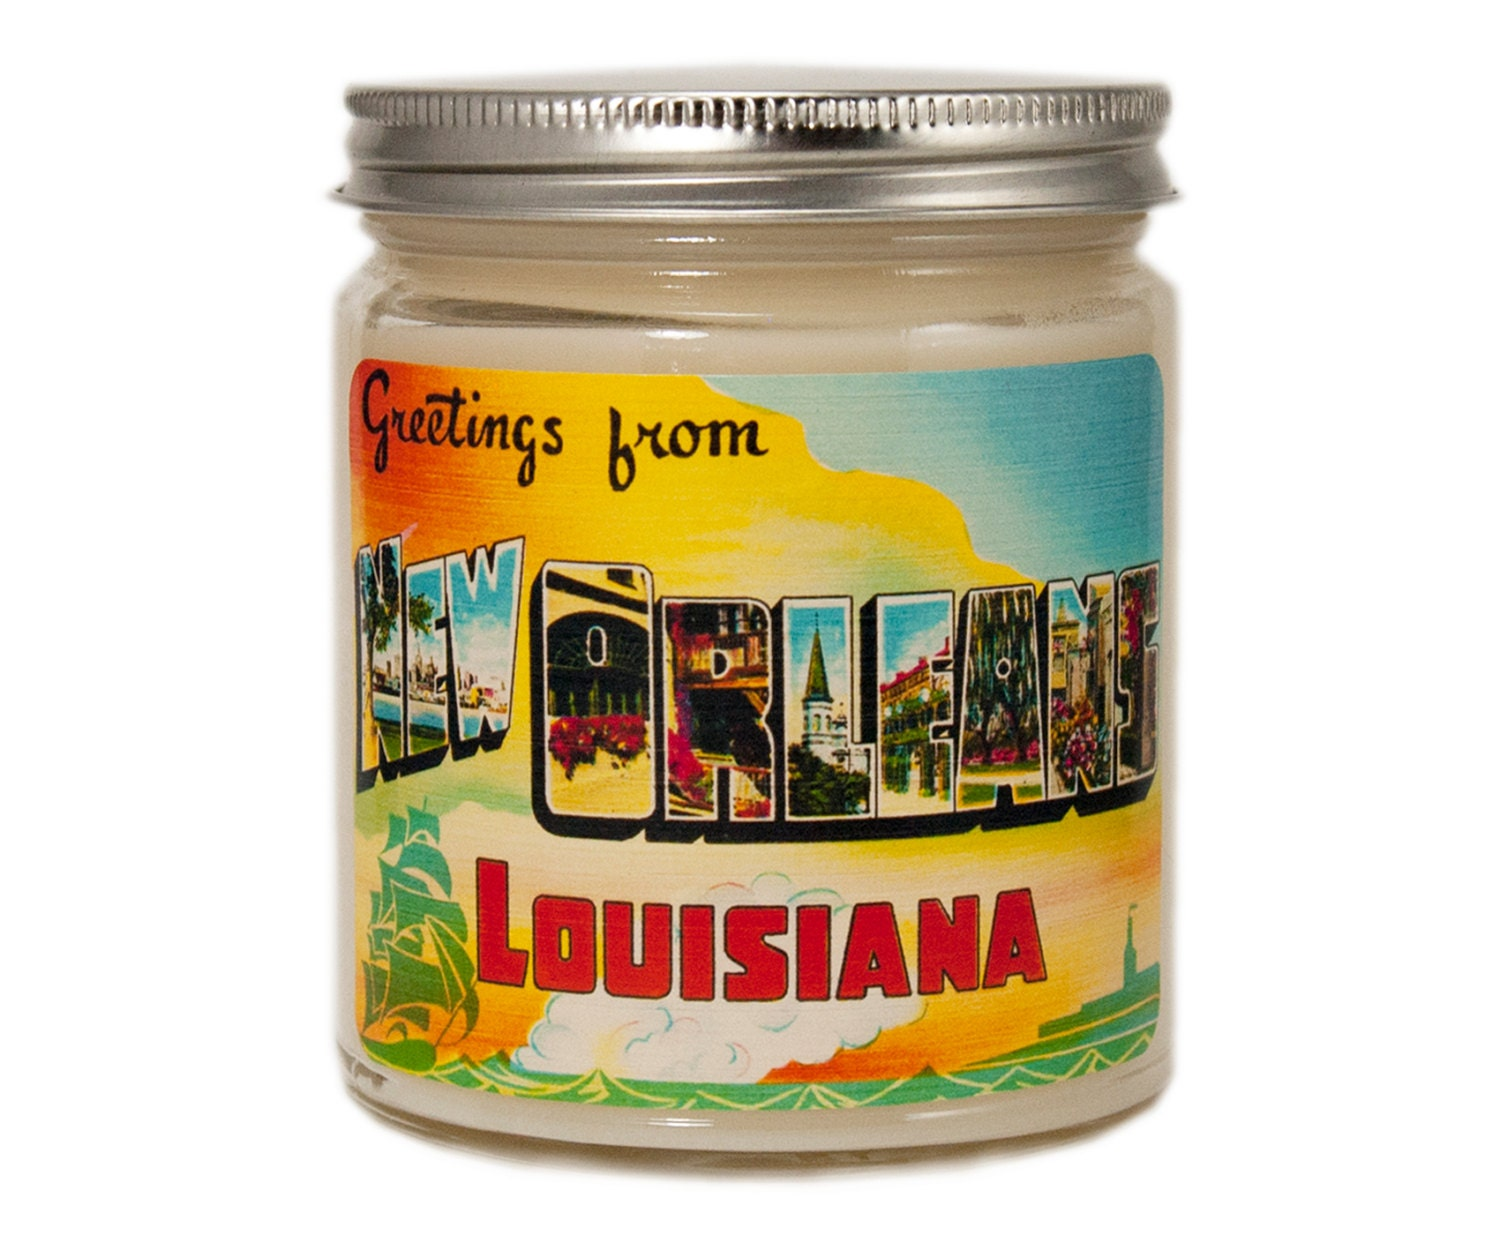 New Orleans Candle New Orleans Gift Homesick Candle Etsy